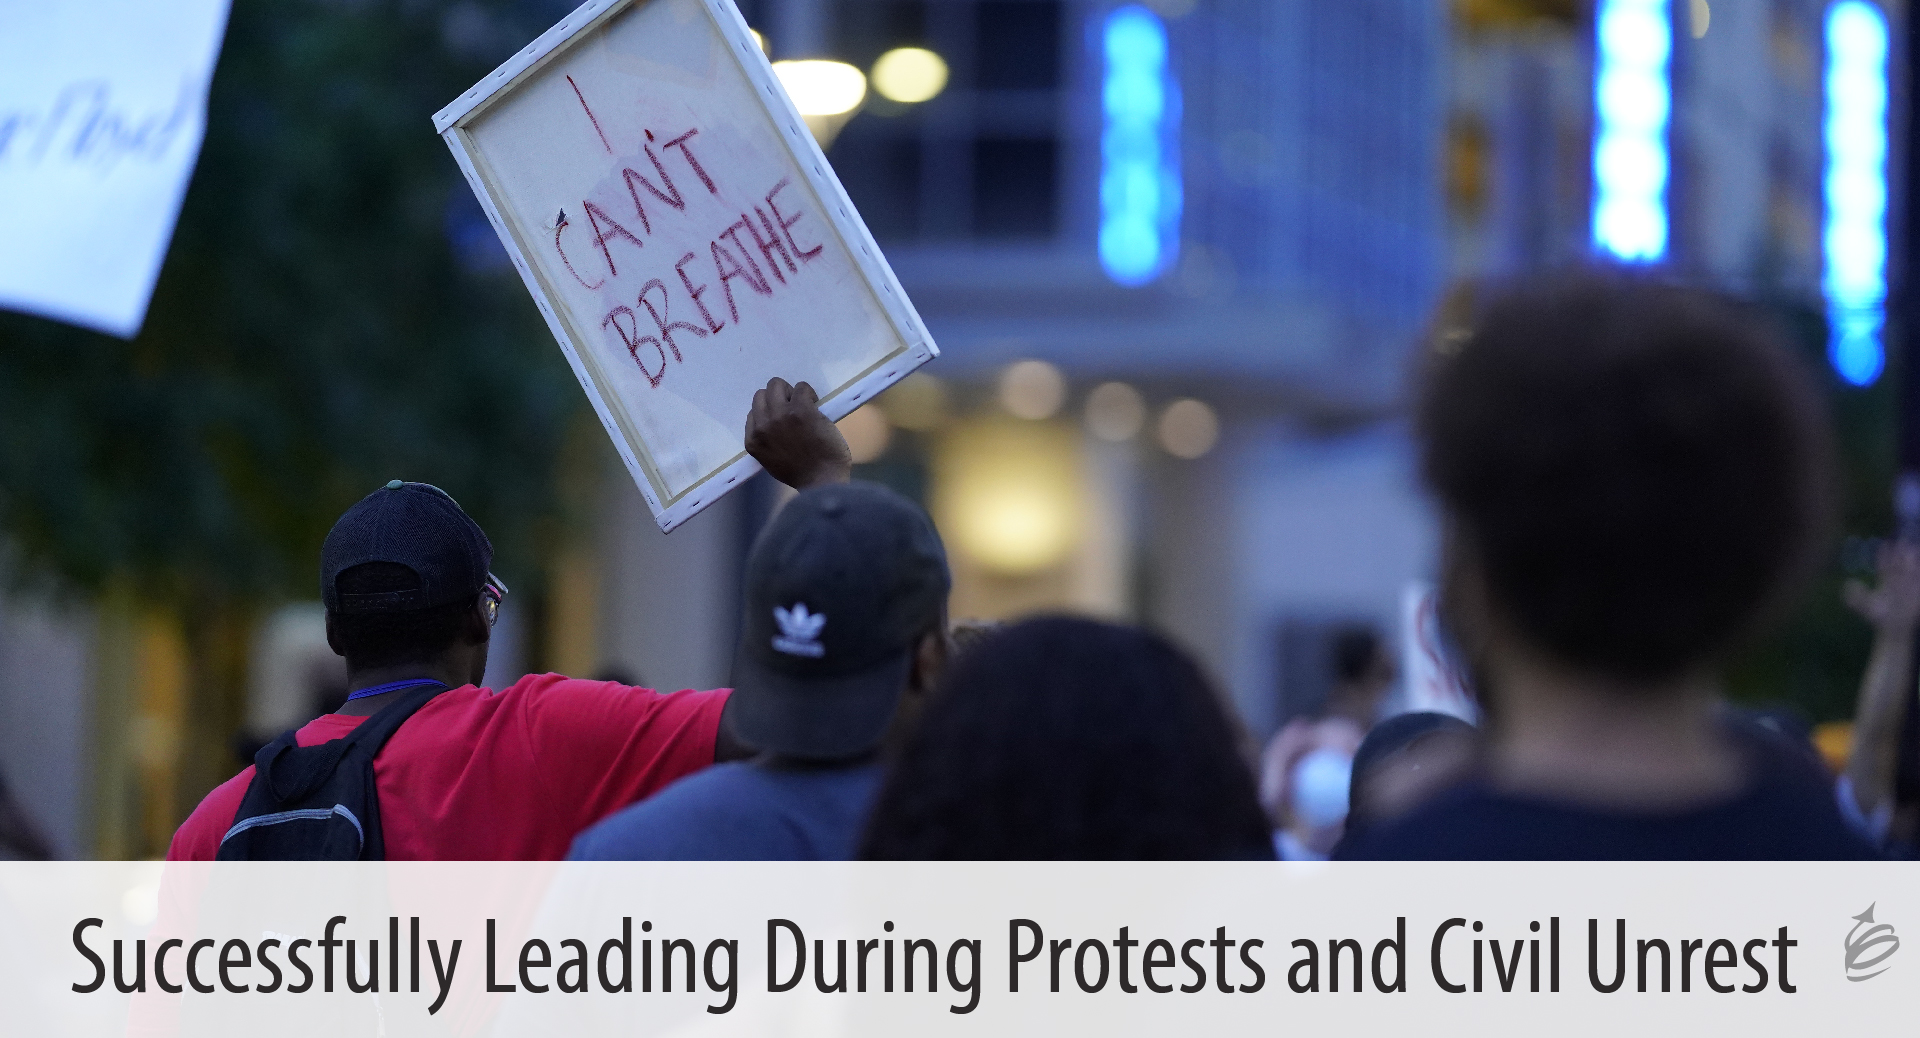 Leading during protest and civil unrest